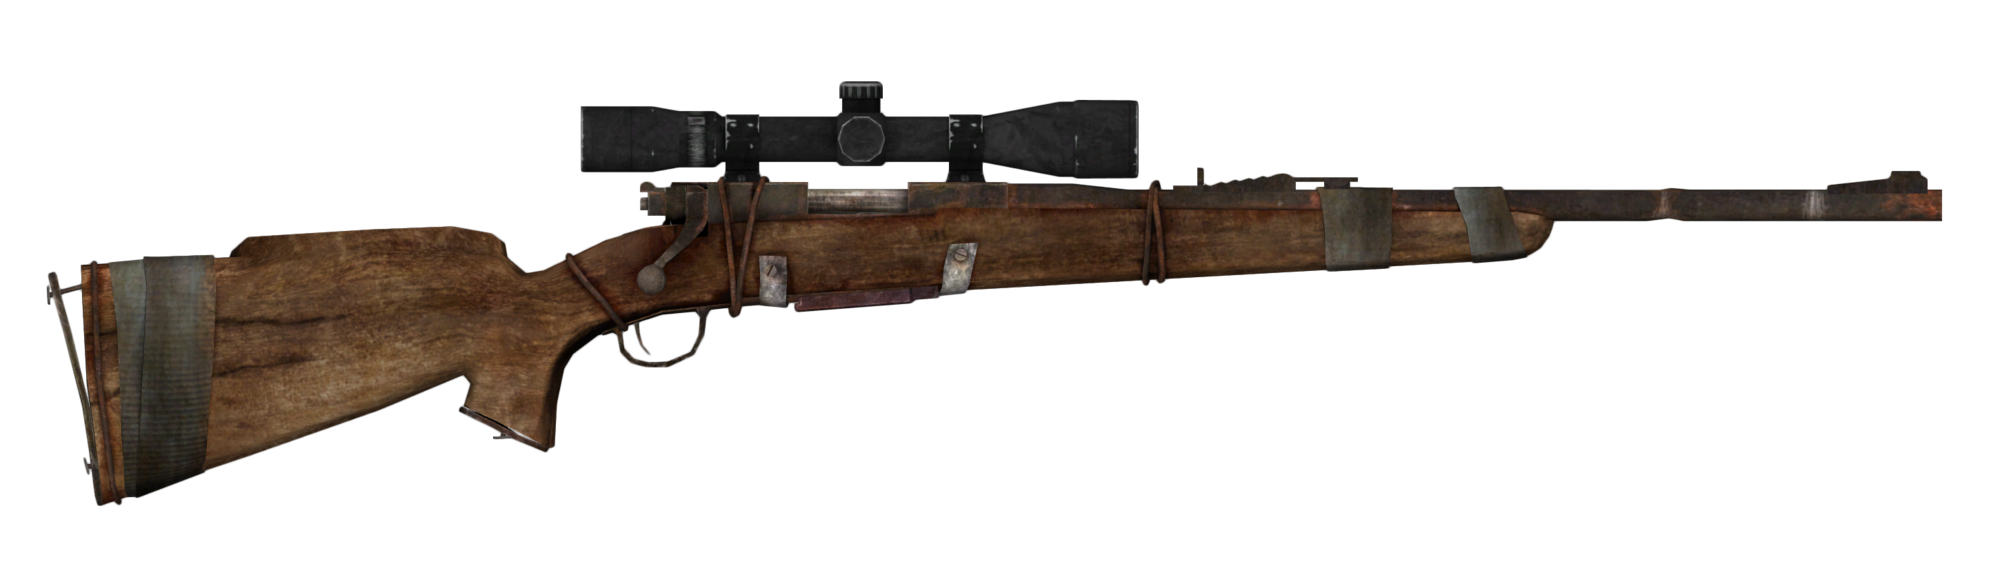 Boone's scoped hunting rifle | Fallout Wiki | FANDOM powered by Wikia